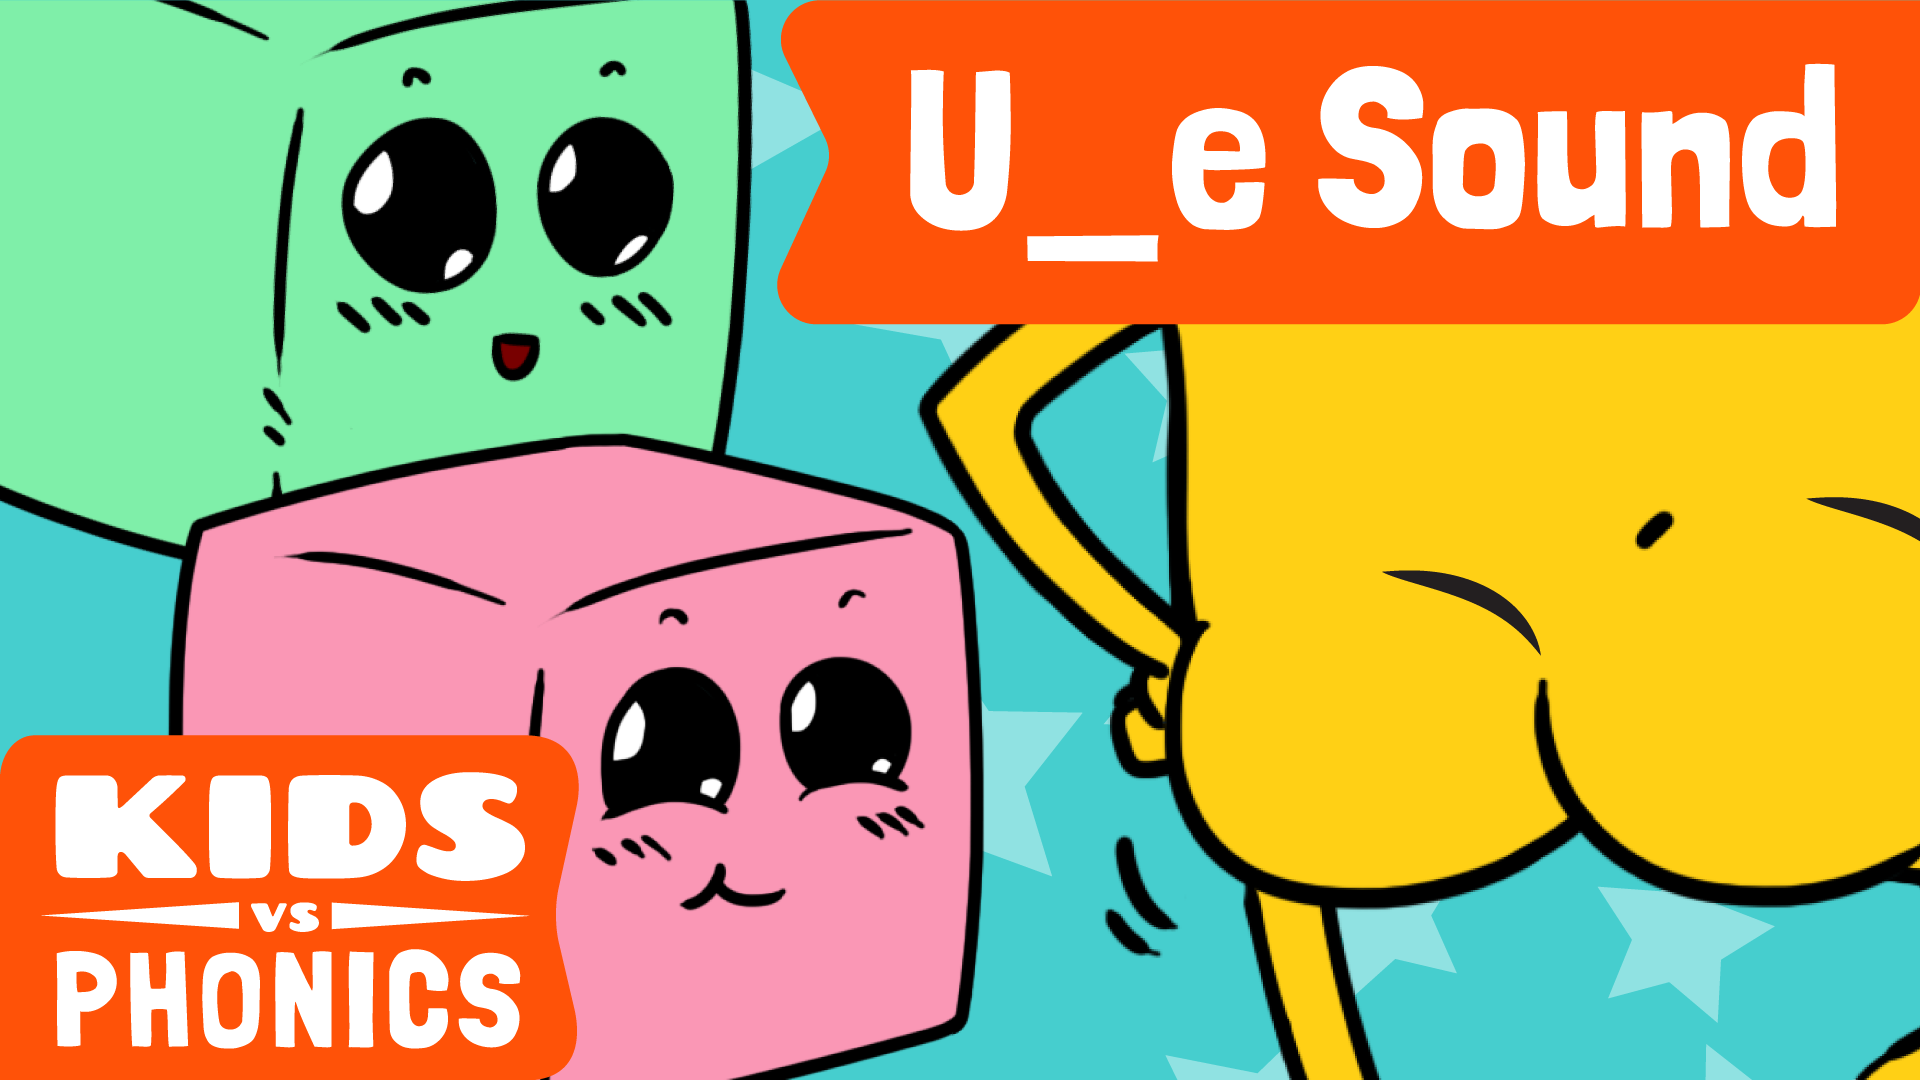 Red Cat Reading Kids vs Phonics 'u_e' Sound